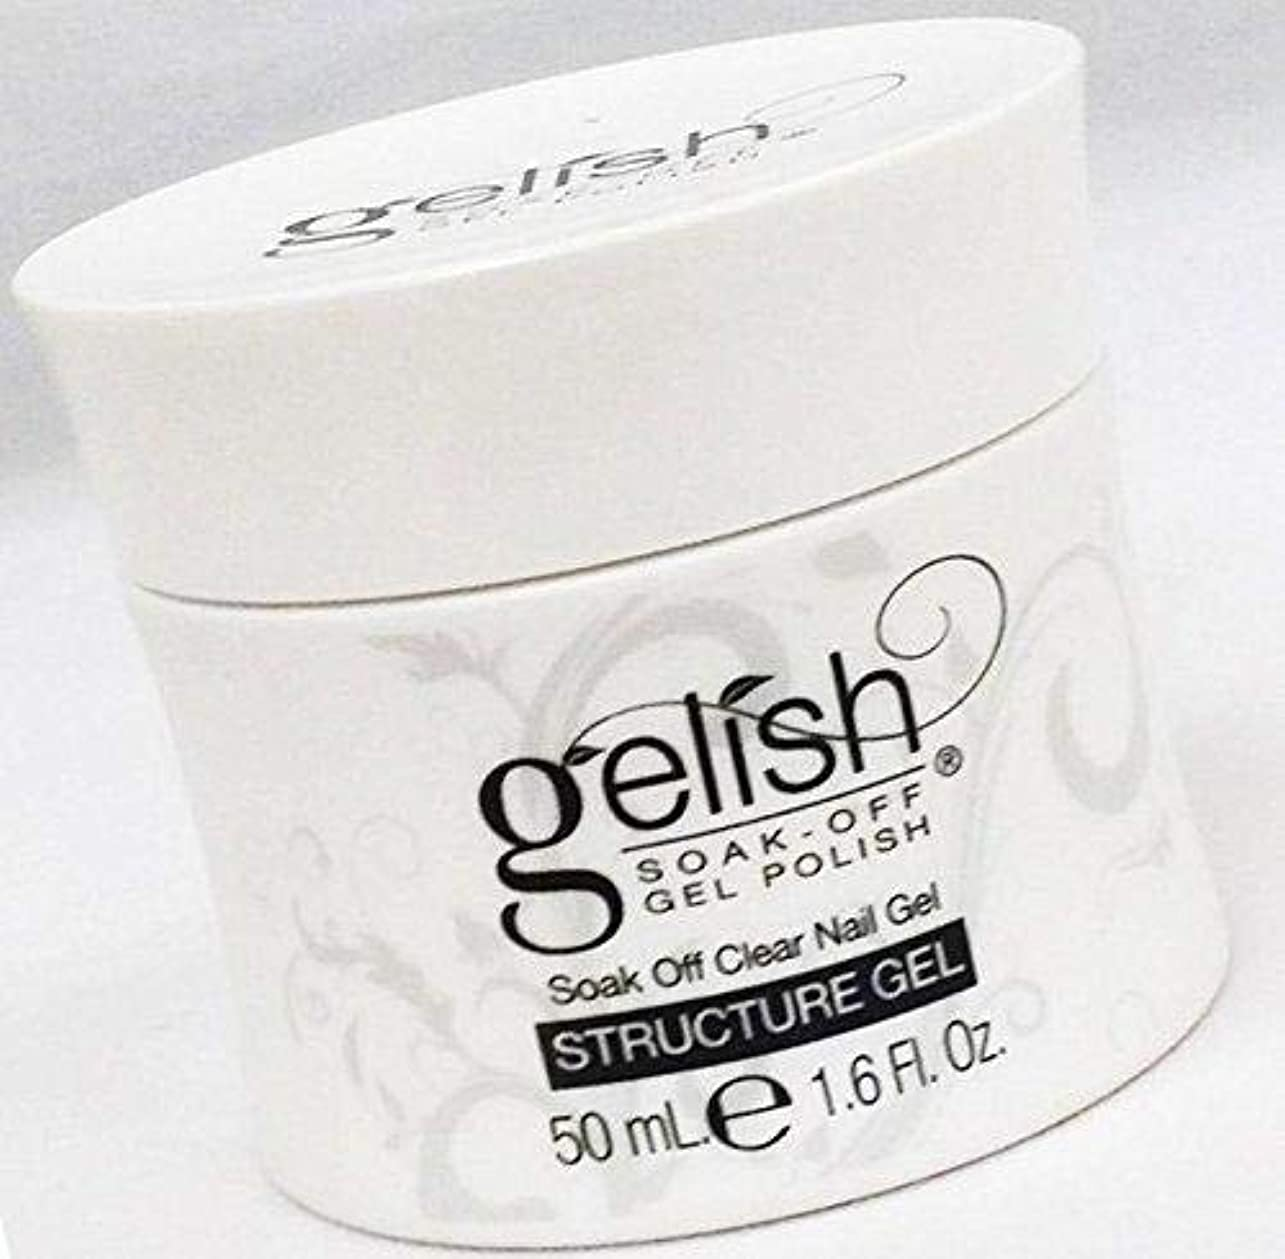 スープアラスカステートメントHarmony Gelish Essentials - Structure Gel Building Gel - 50ml / 1.6oz